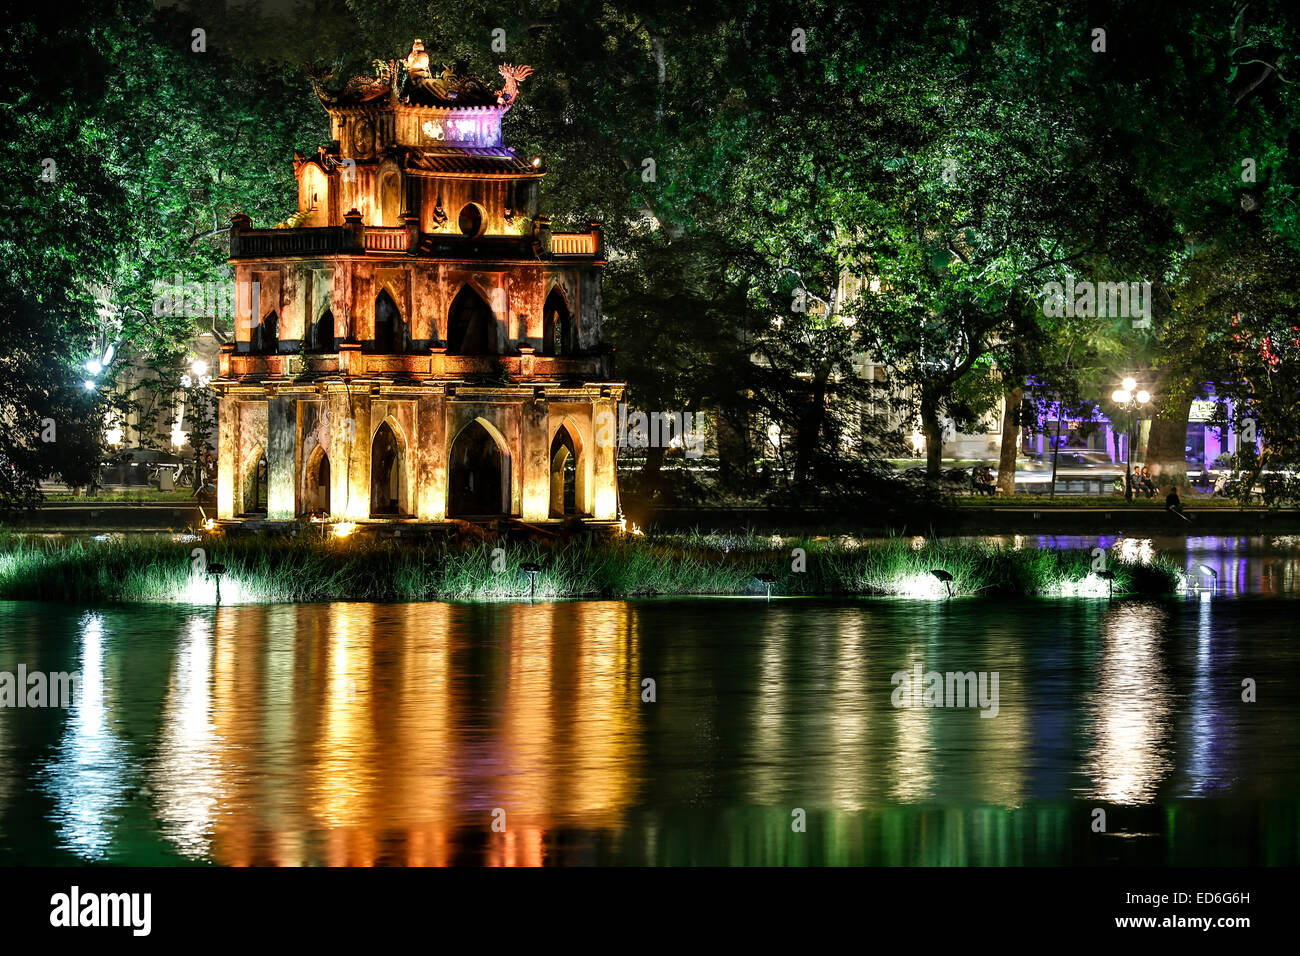 Turtle Tower, Hoan Kiem Lake, Hanoi, Vietnam - Stock Image